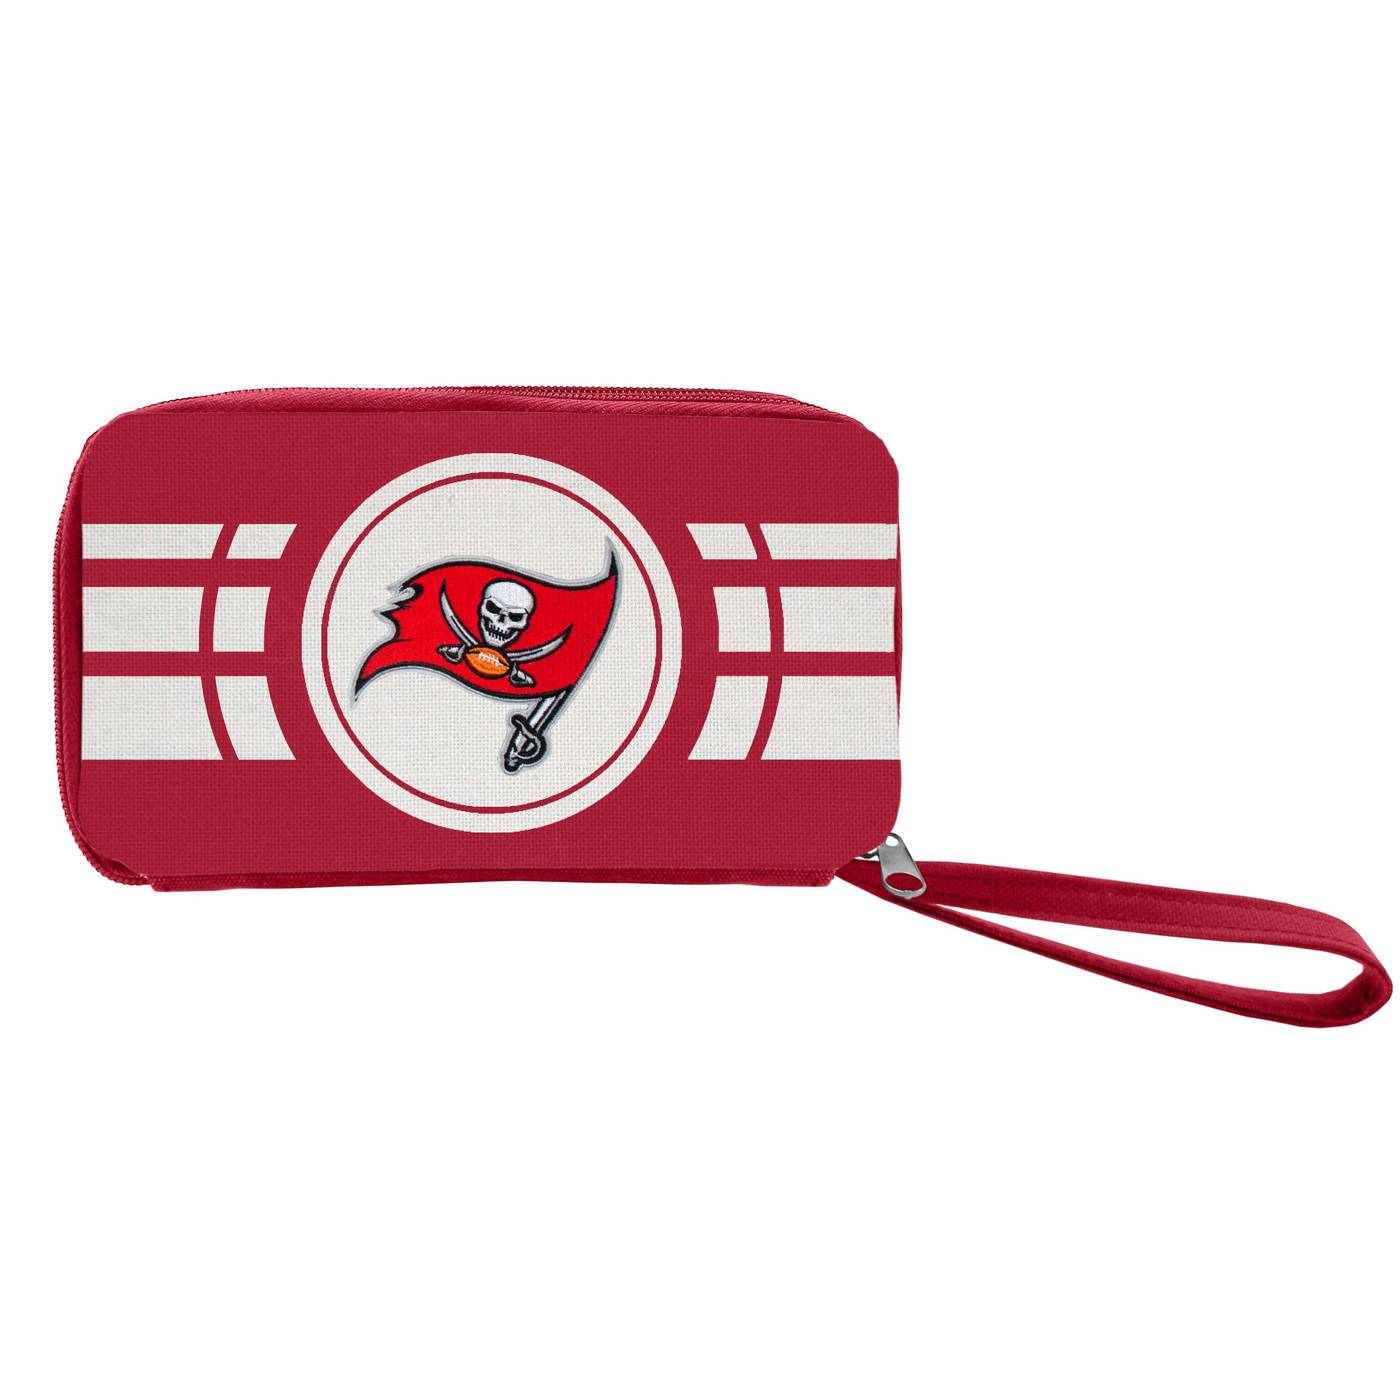 Littlearth NFL Tampa Bay Buccaneers Ripple Zip Wallet